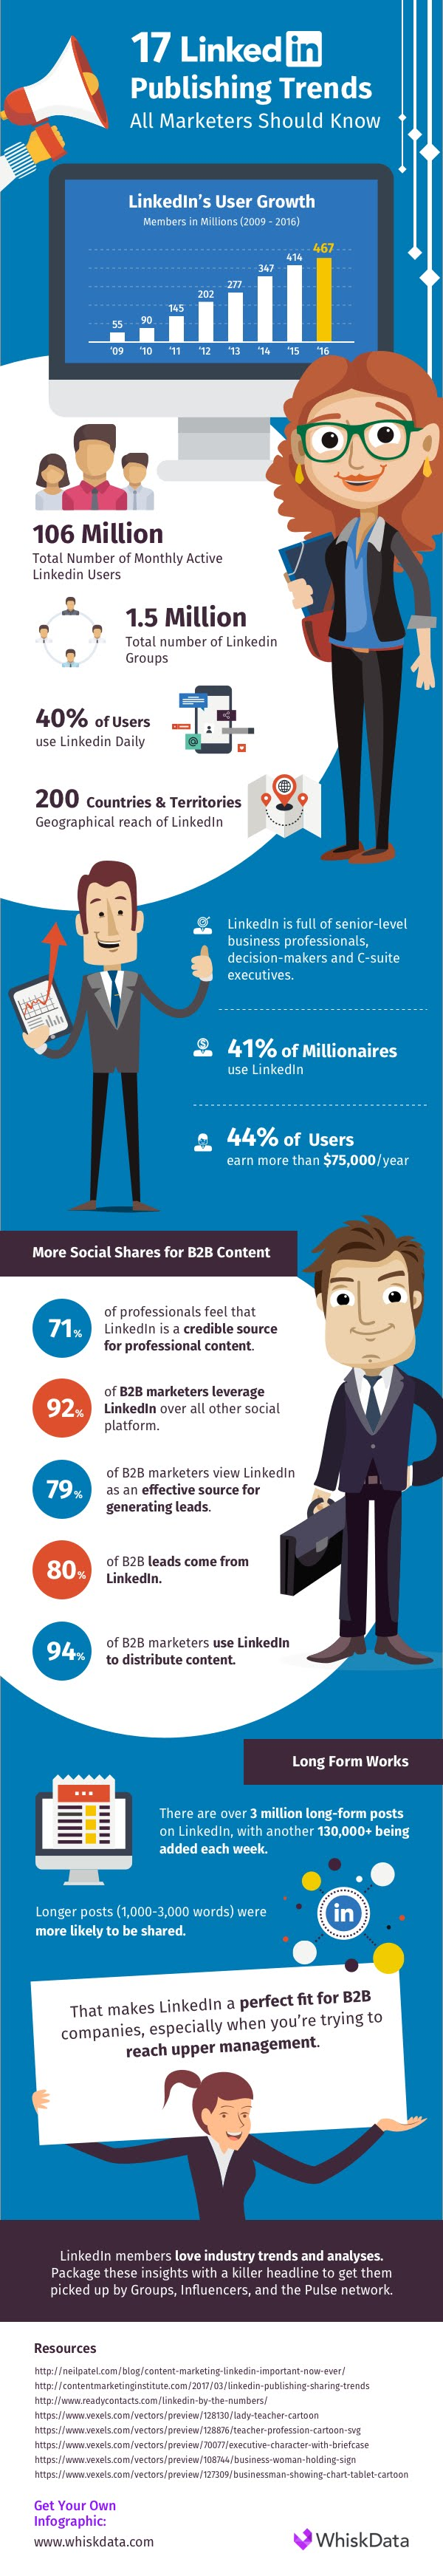 17 LinkedIn Trends for Marketers Infographic